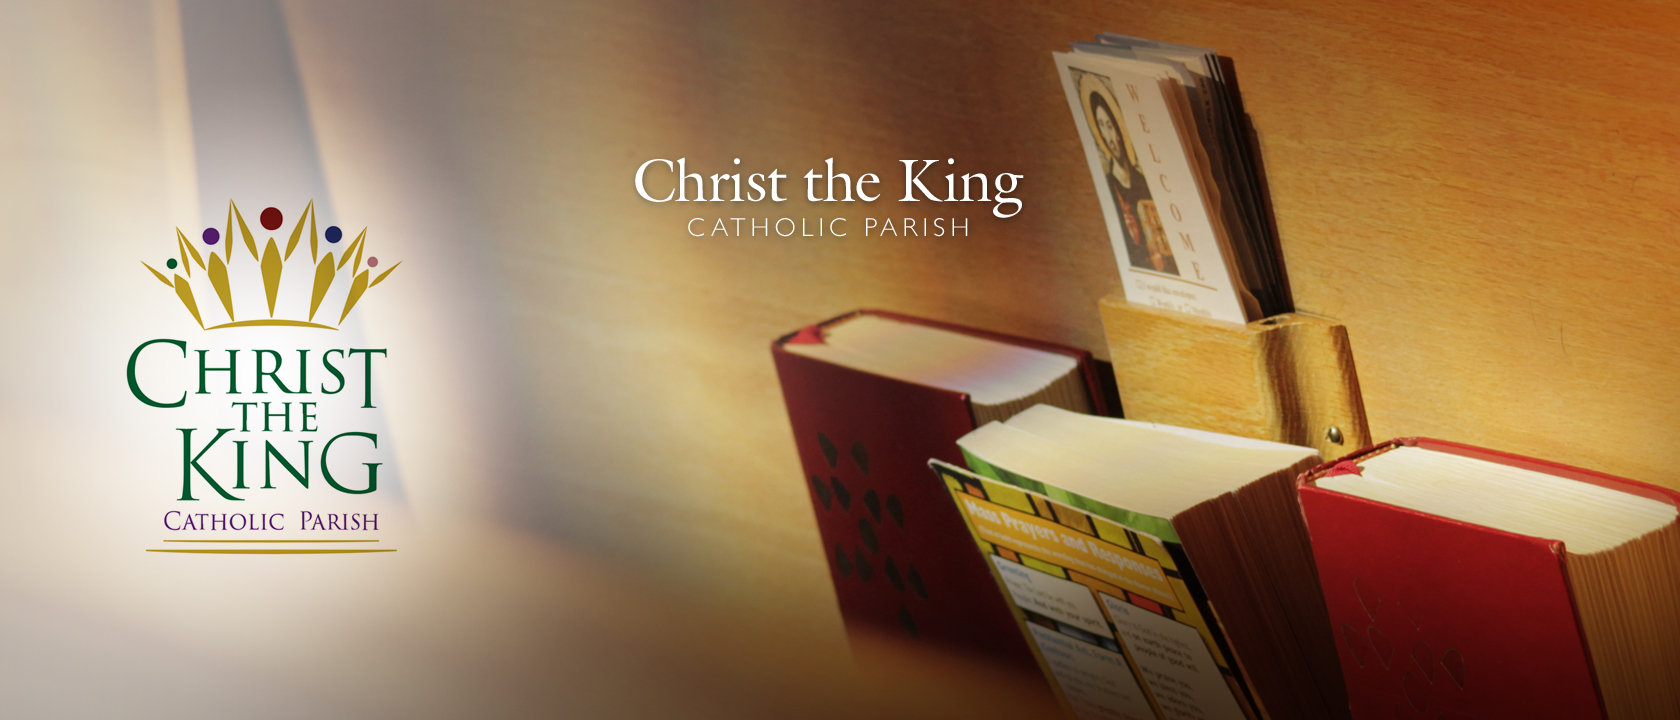 Livestreamed Masses at Christ the King with Fr. John Ozella or Worship With Us in the Comfort of Your Car